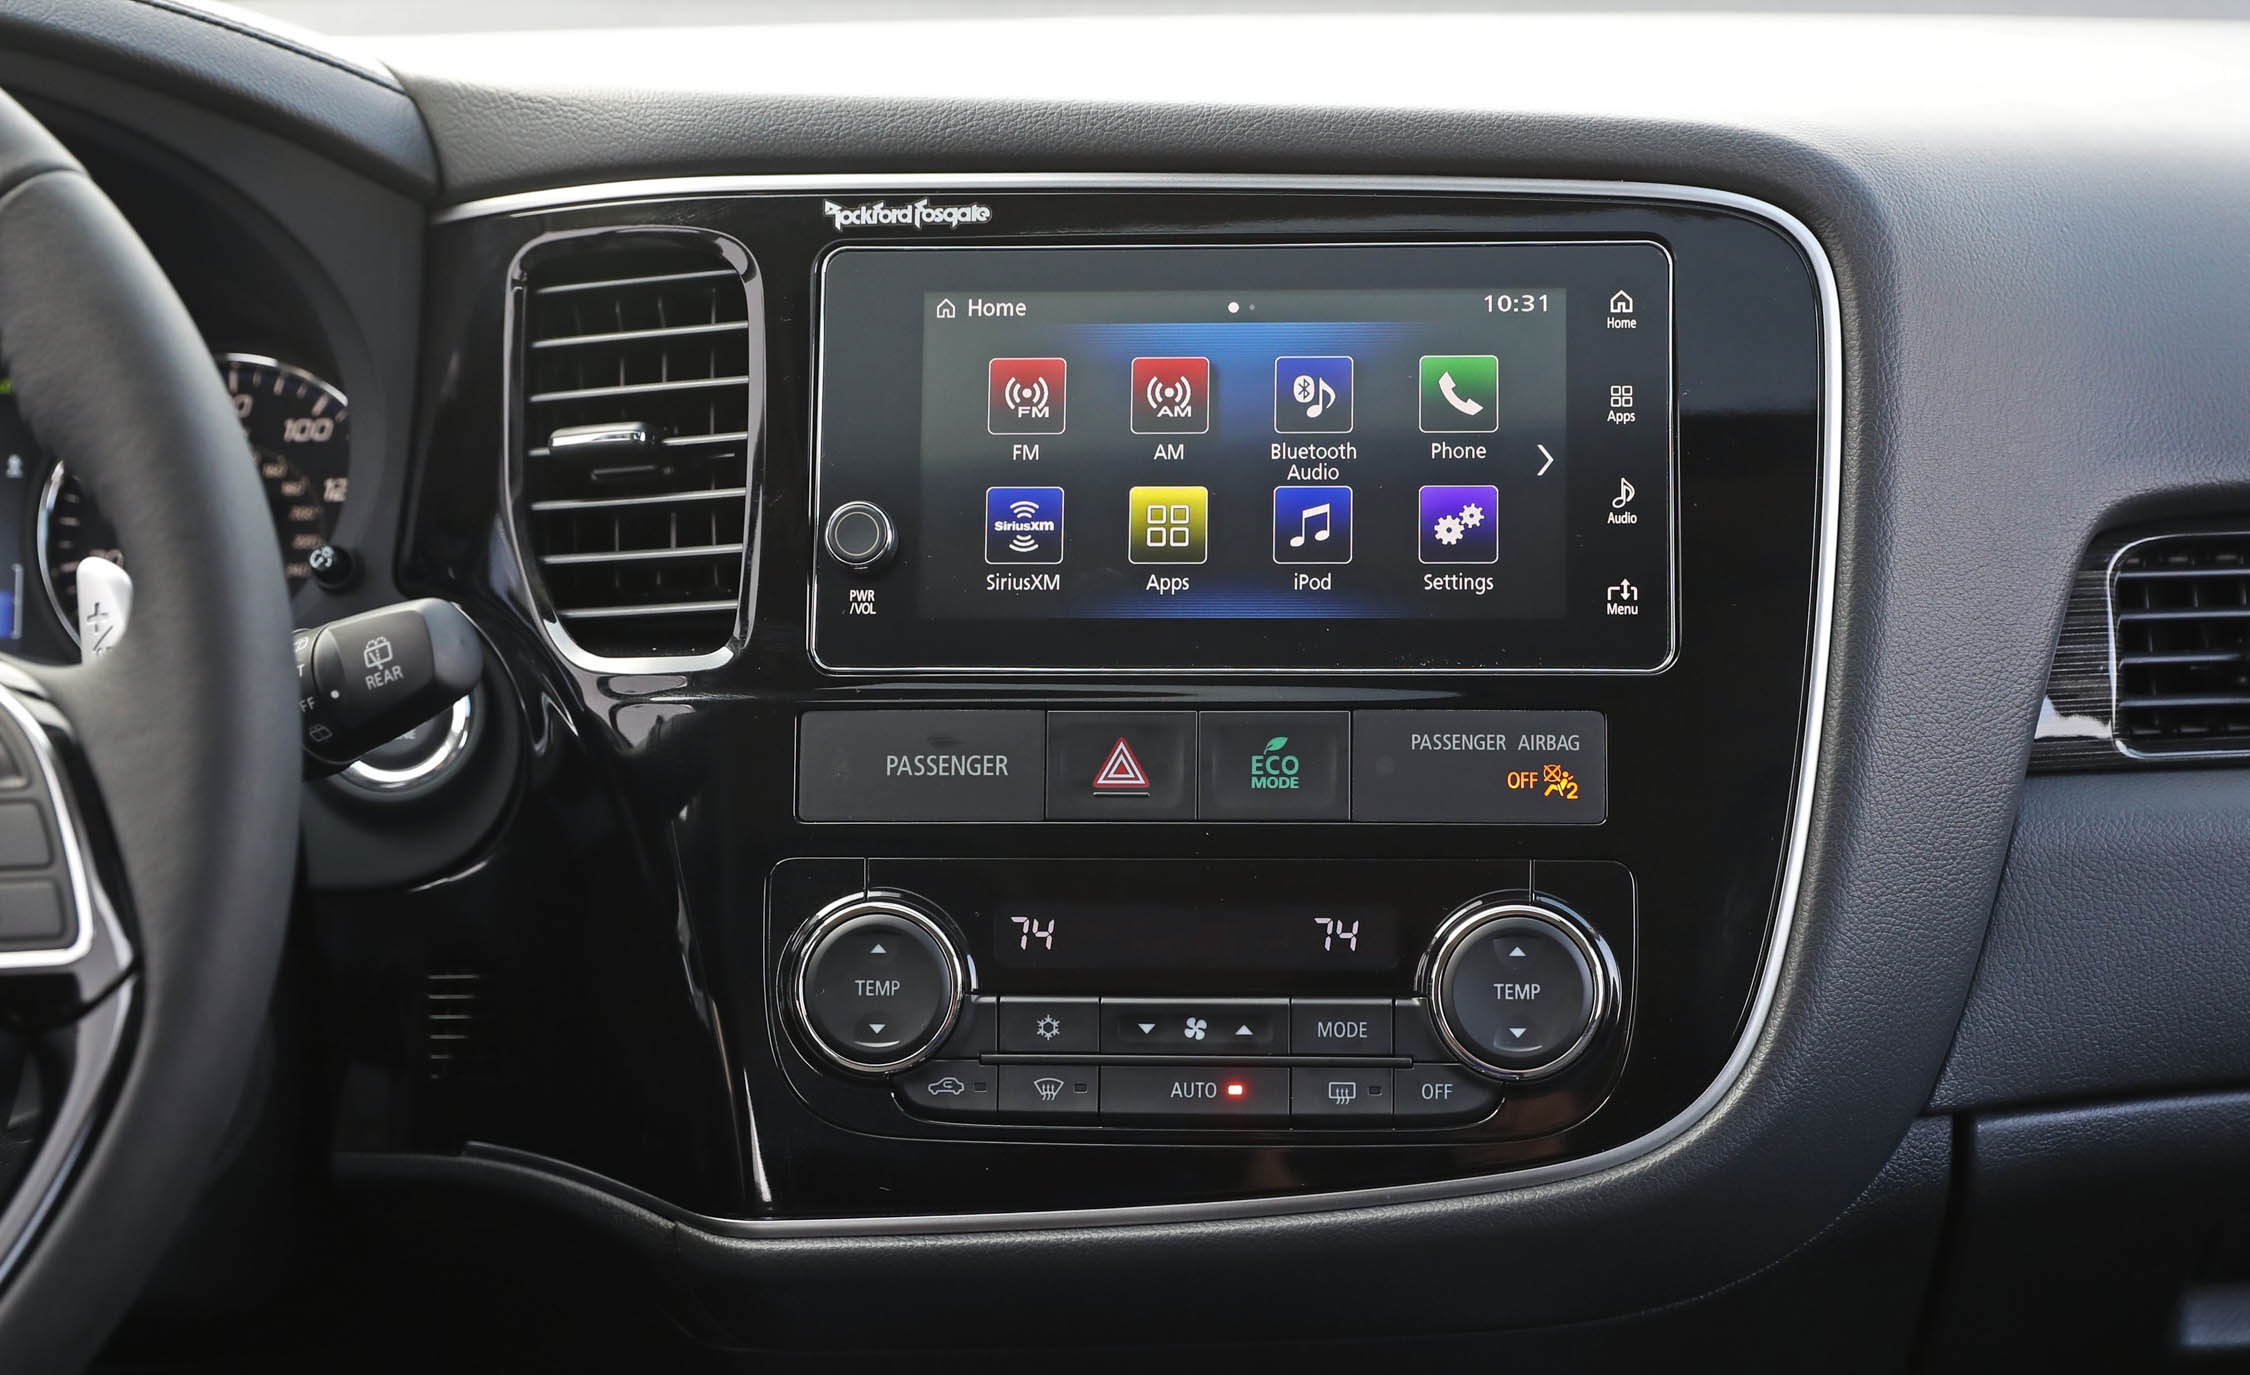 2017 Mitsubishi Outlander Gt Interior View Headunit And Multimedia (View 22 of 34)